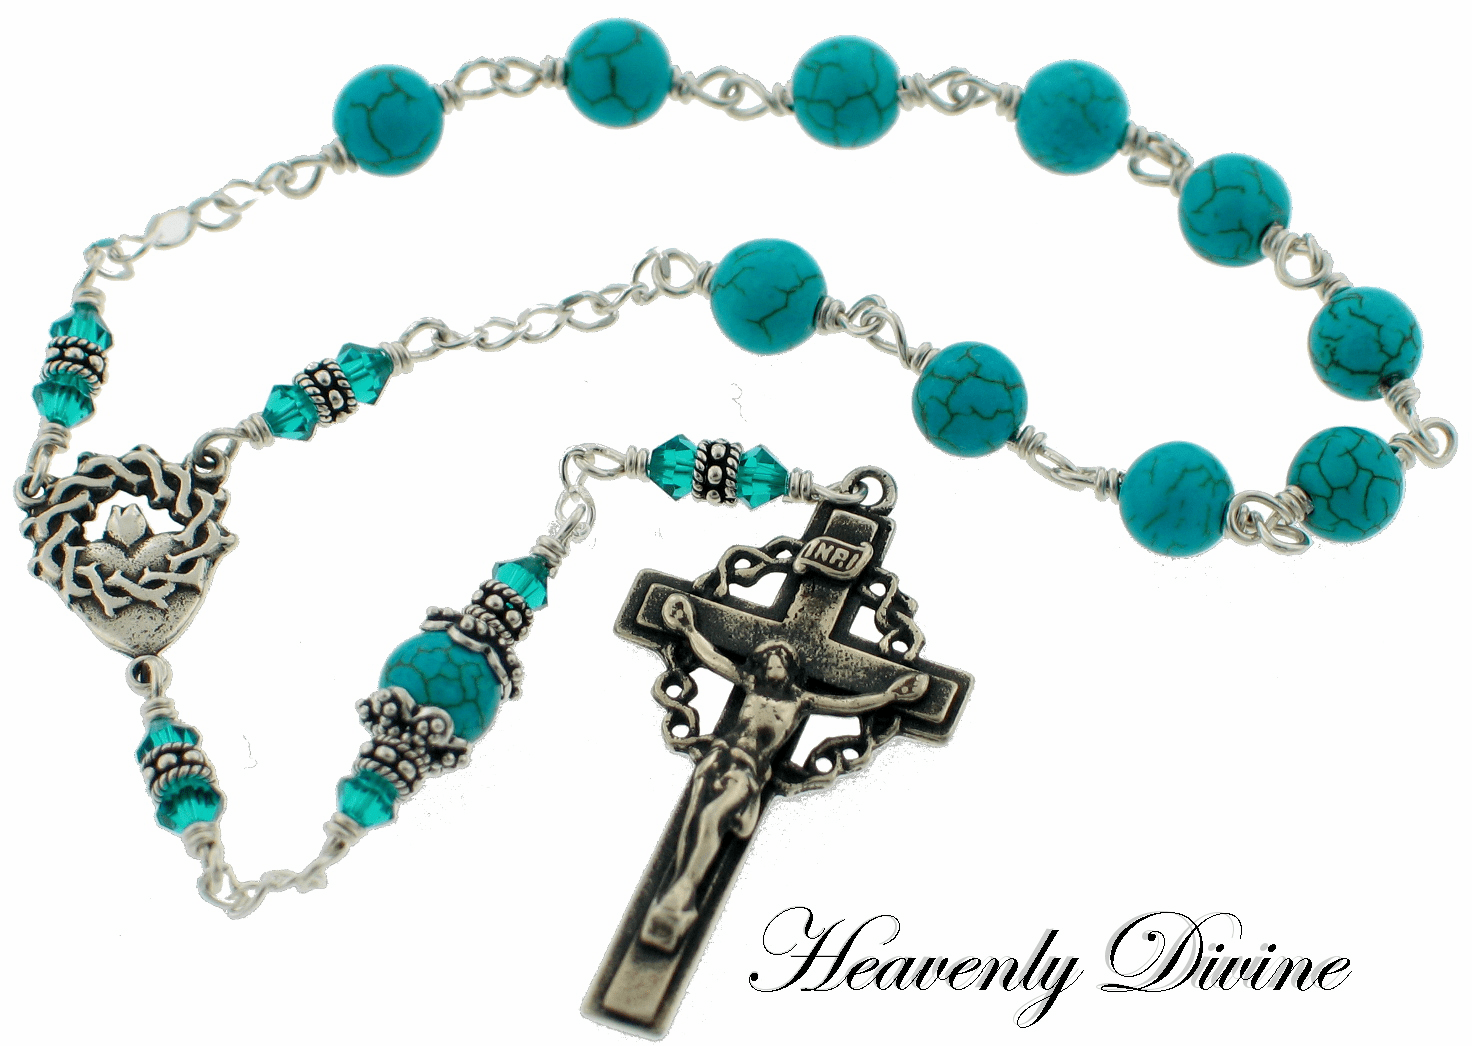 Turquoise Crown of Thorns Pocket Sterling Silver Pocket Rosary by Heavenly Divine